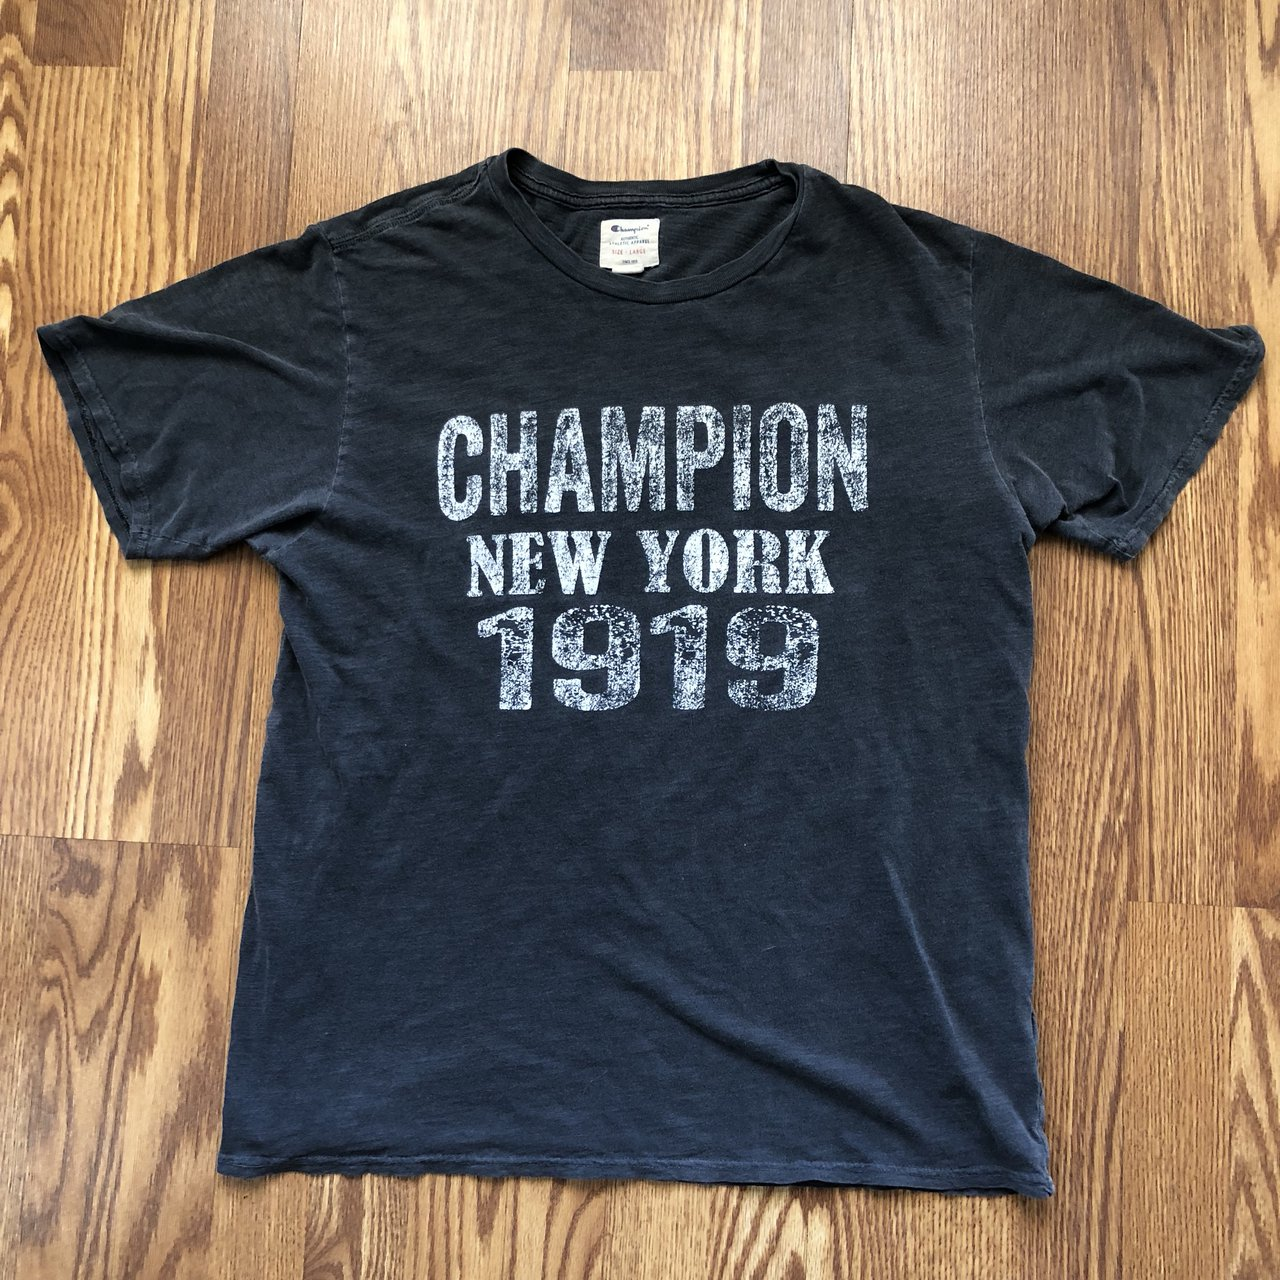 Vintage Champion spellout graphic T shirt. Features New York - Depop b07a891ac0c